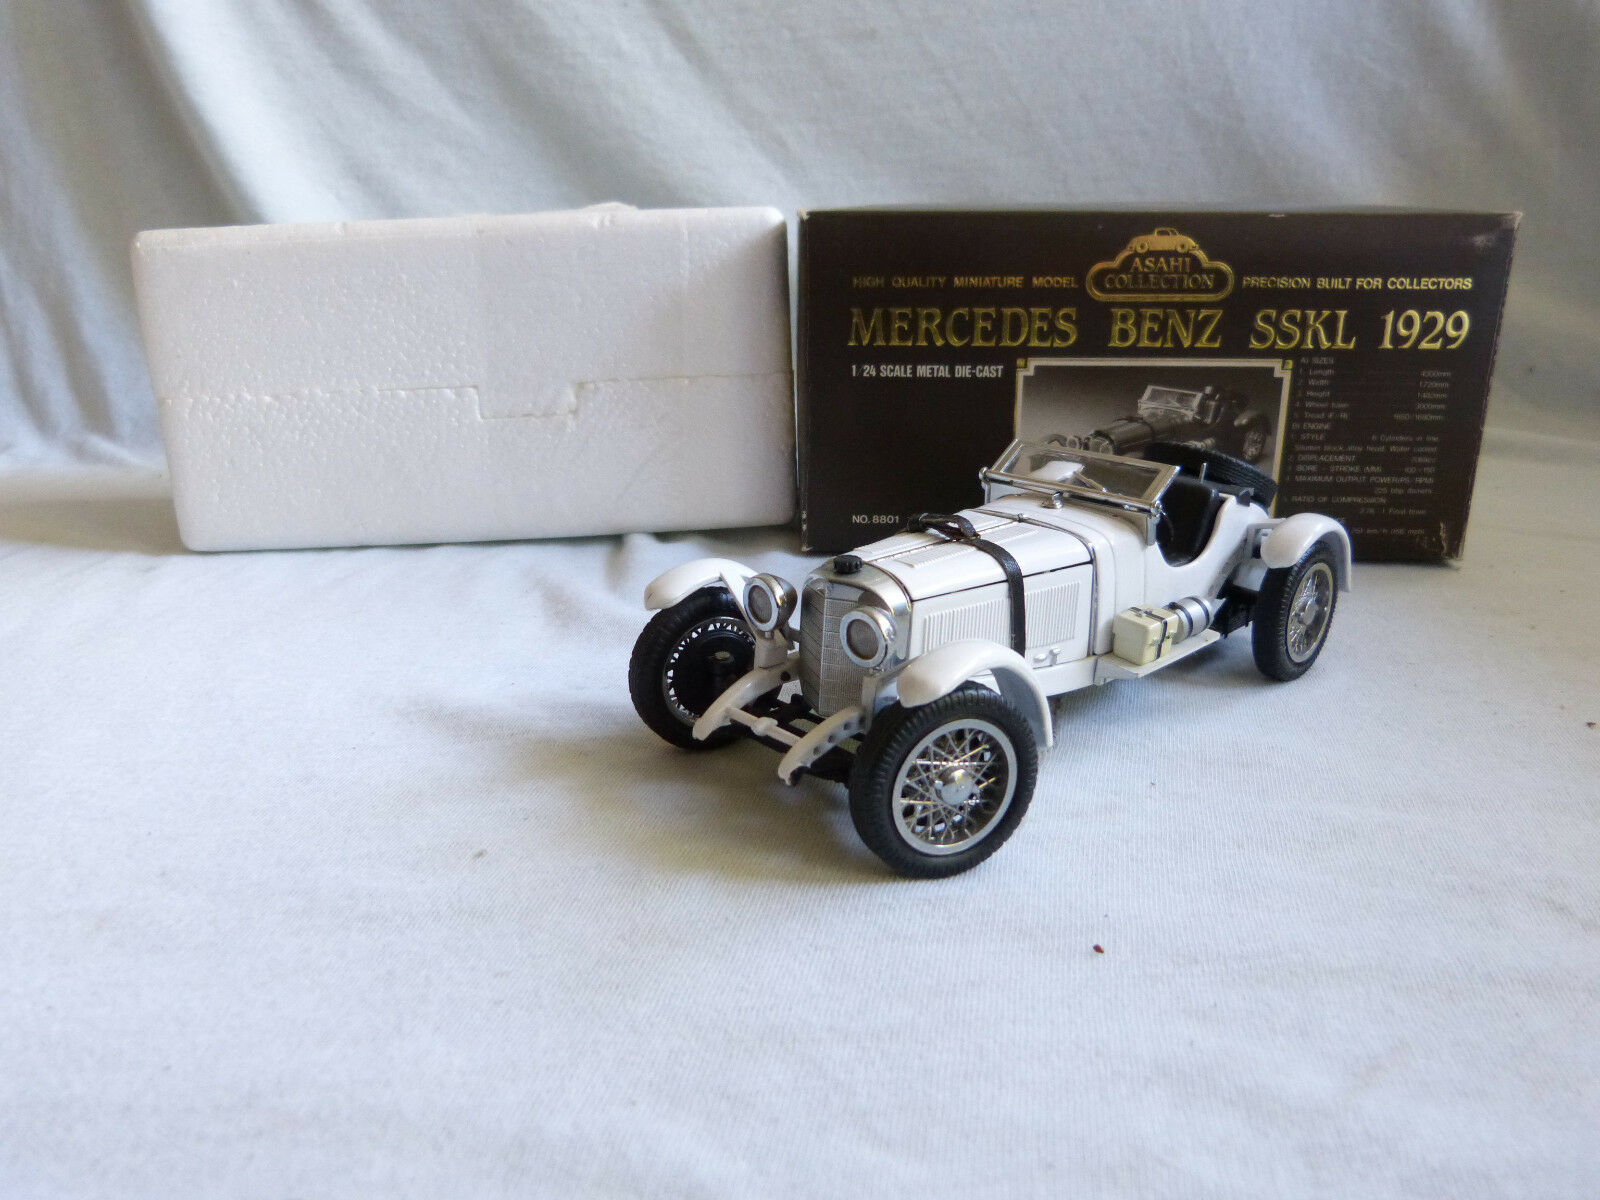 Asahi collection MERCEDES BENZ SSKL 1929 Modèle Voiture Model Car 1 24 Comme neuf IN BOX